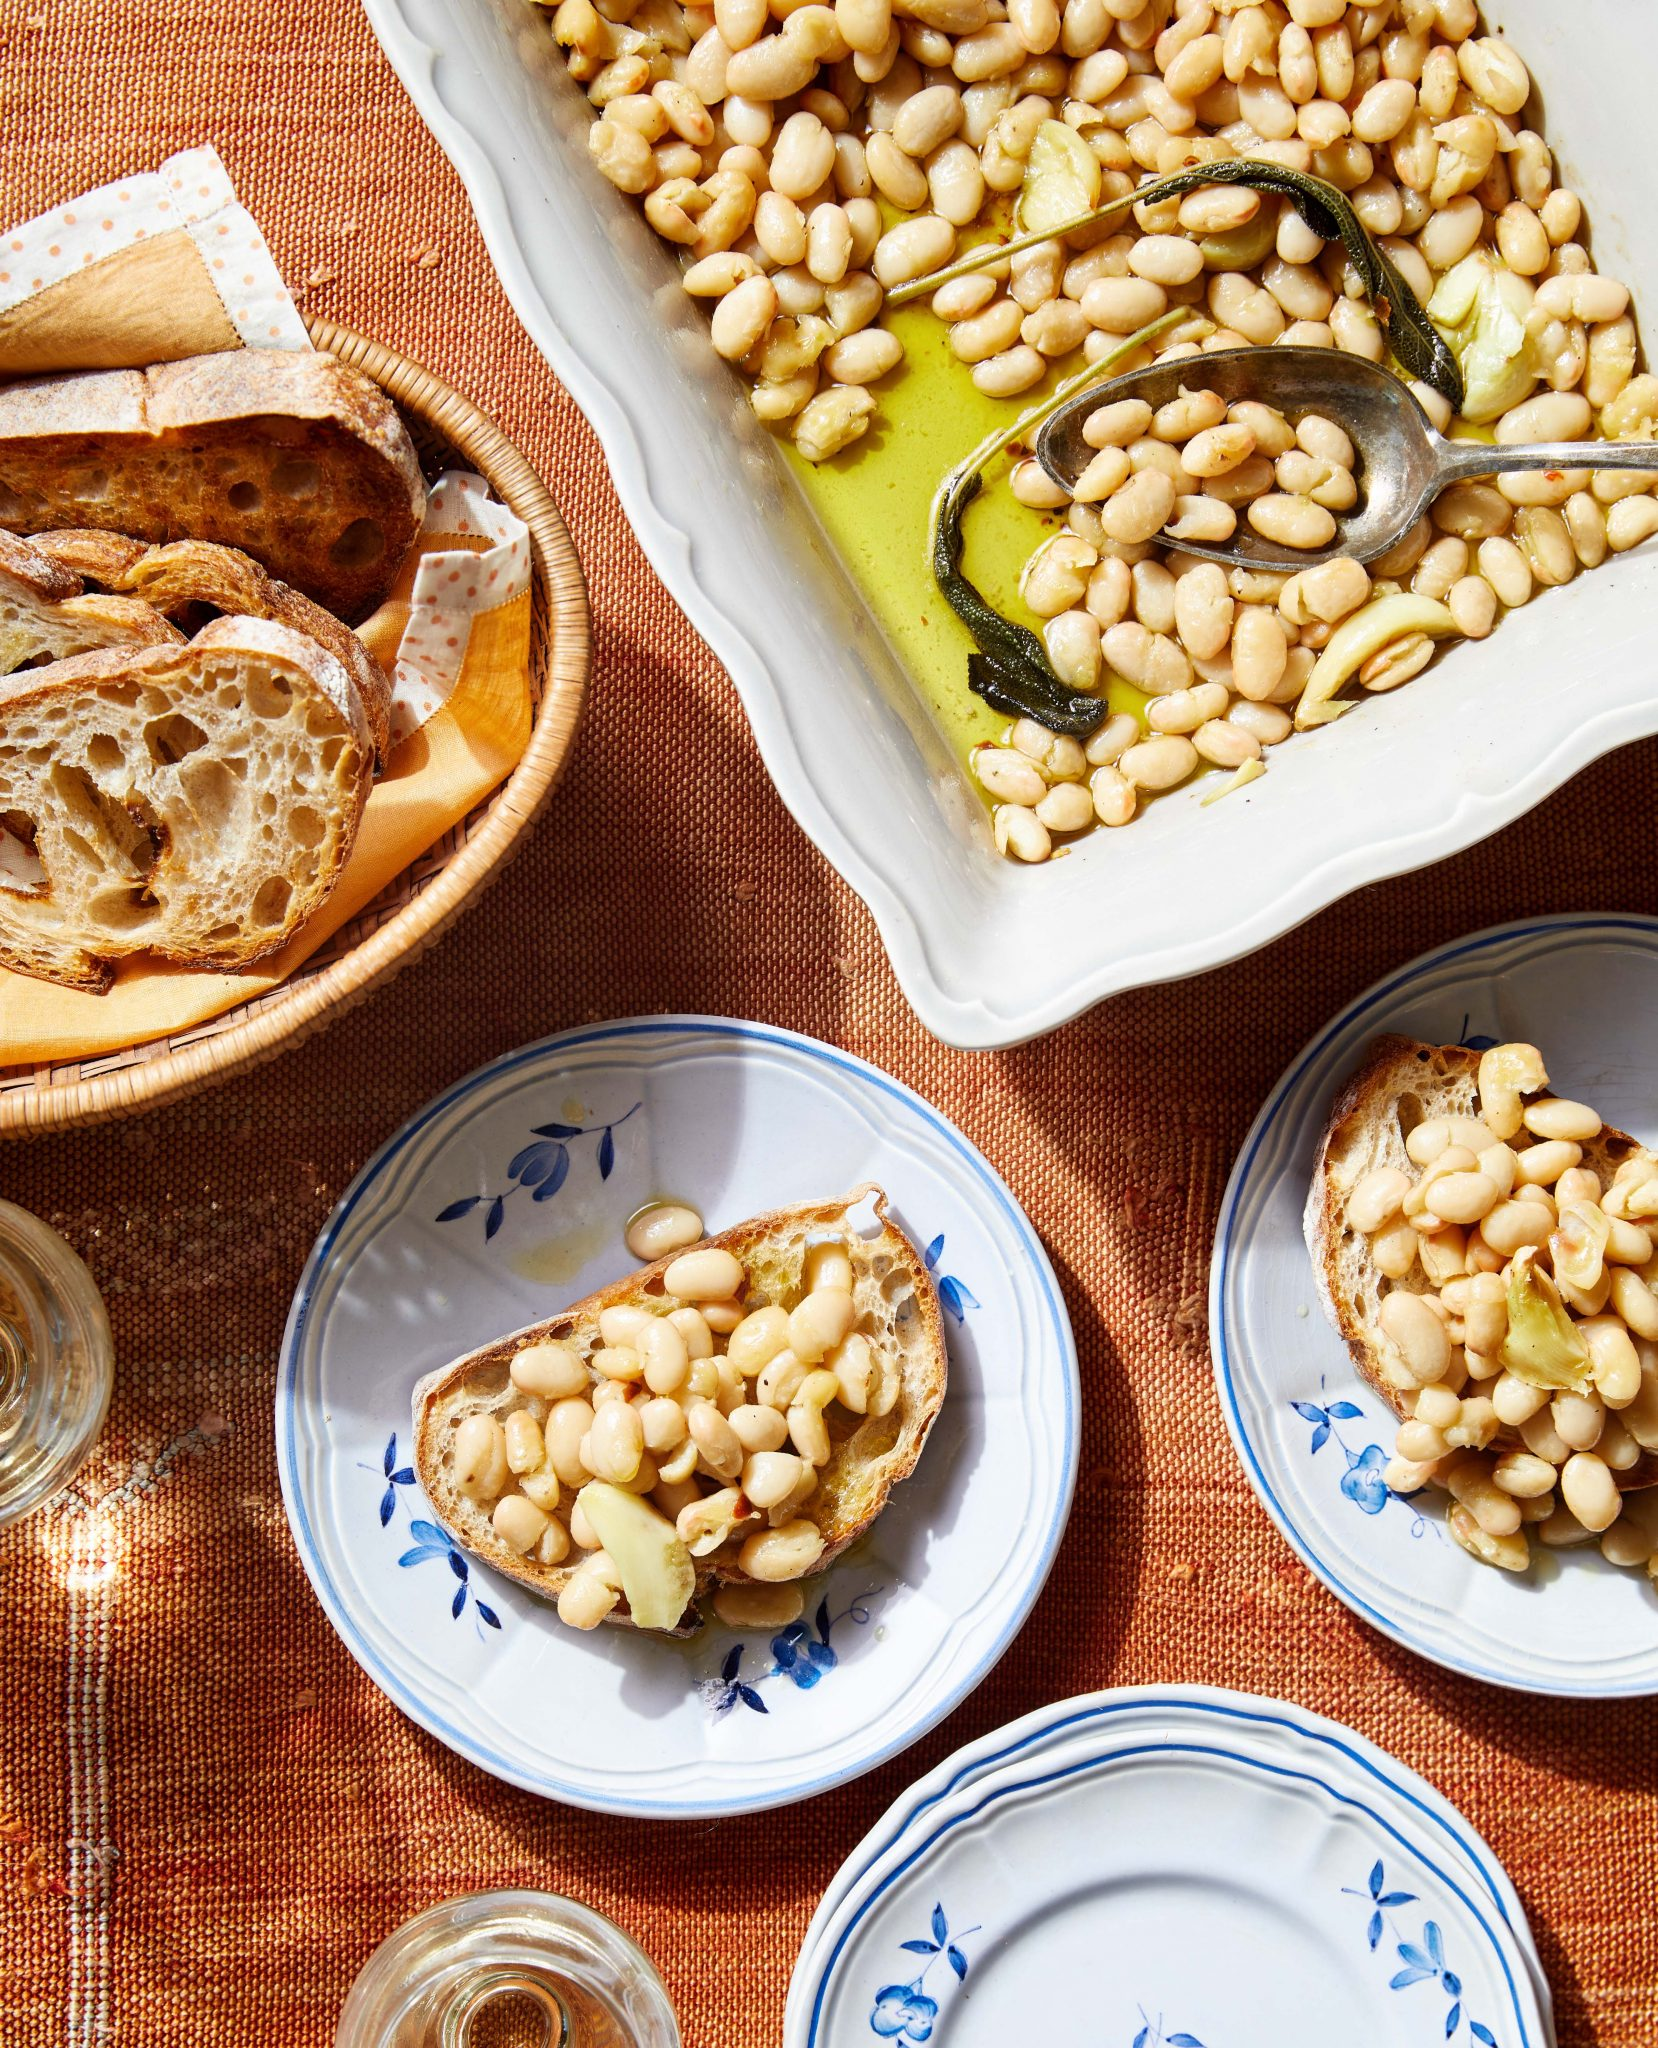 Vegan Olive Oil–Braised White Beans